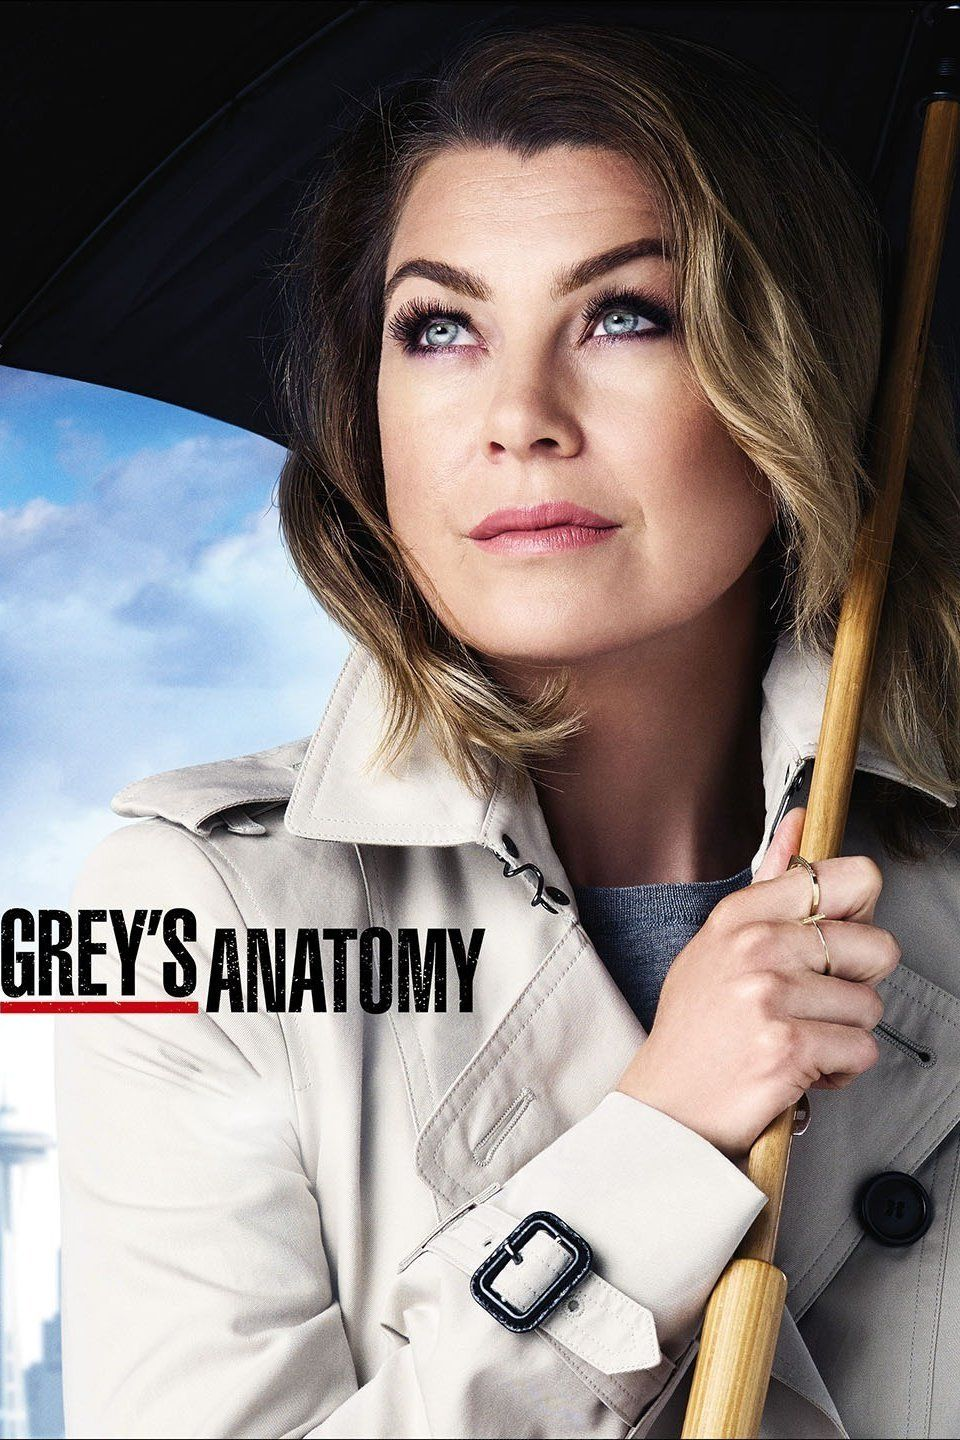 12 Questions For Greys Anatomy Season 13 C H A R A C T E R